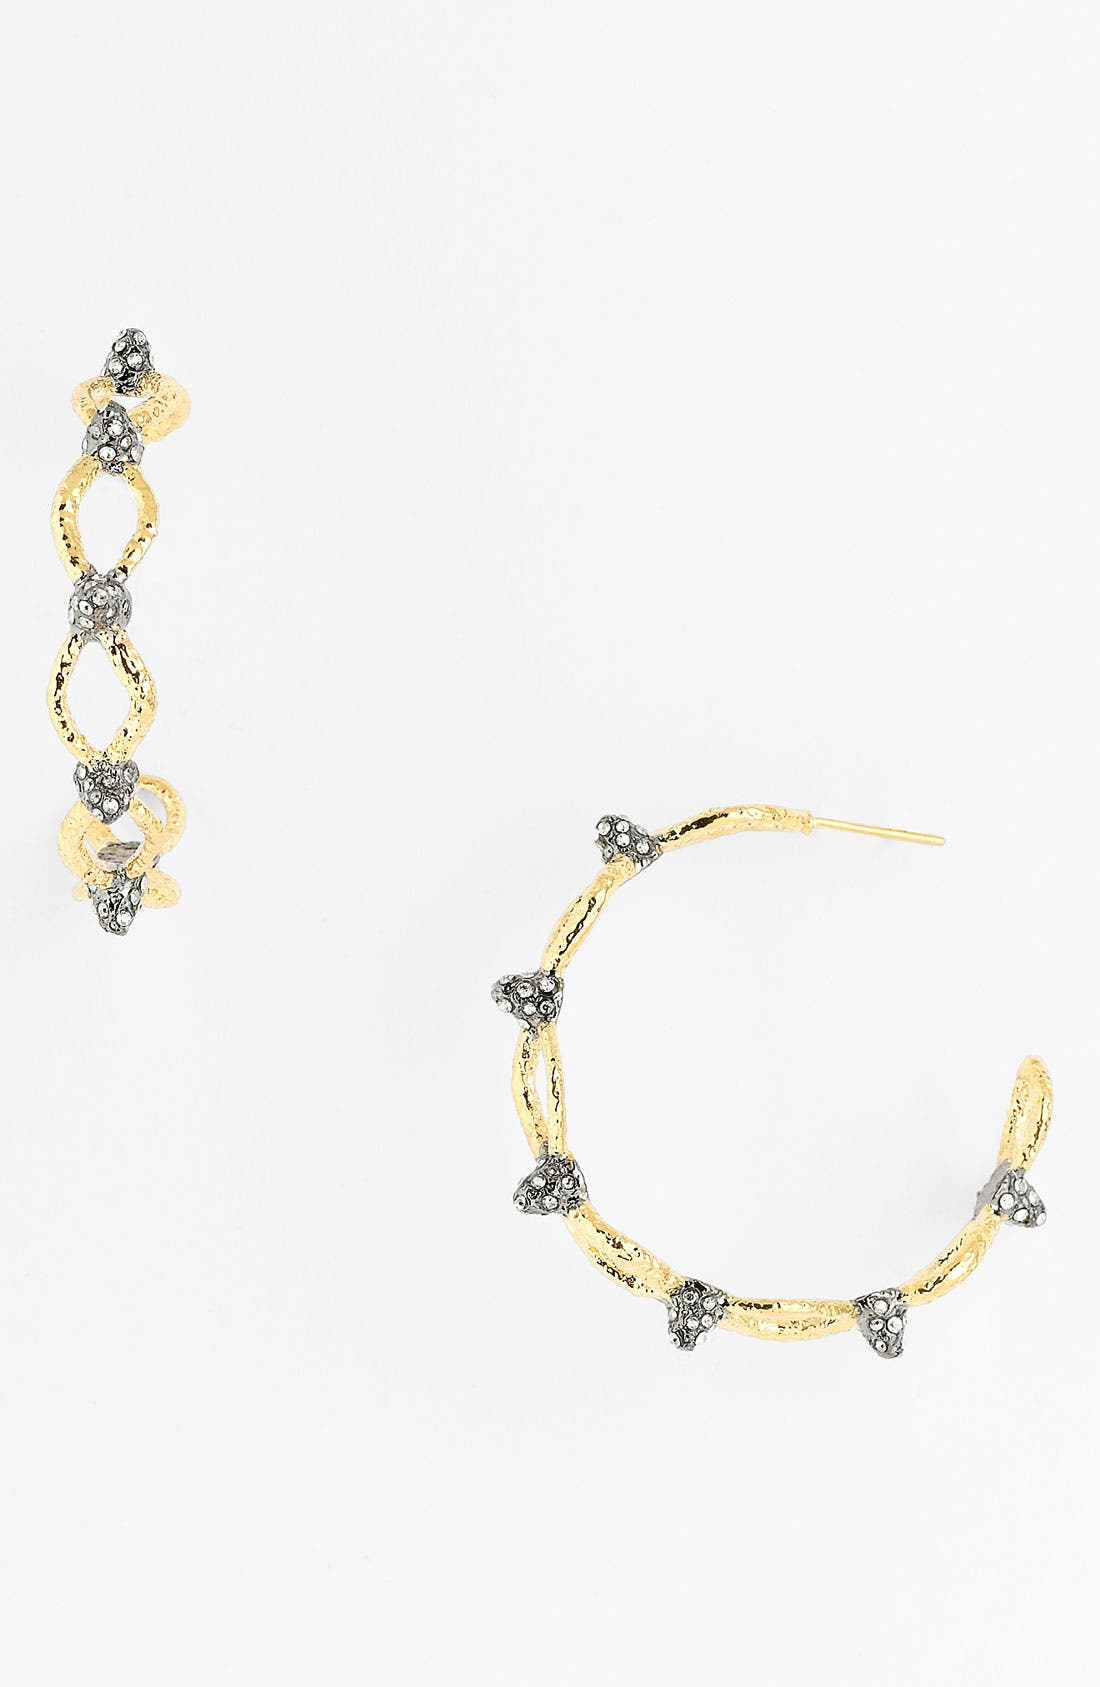 Main Image - Alexis Bittar 'Elements - Siyabona' Spiked Woven Hoop Earrings